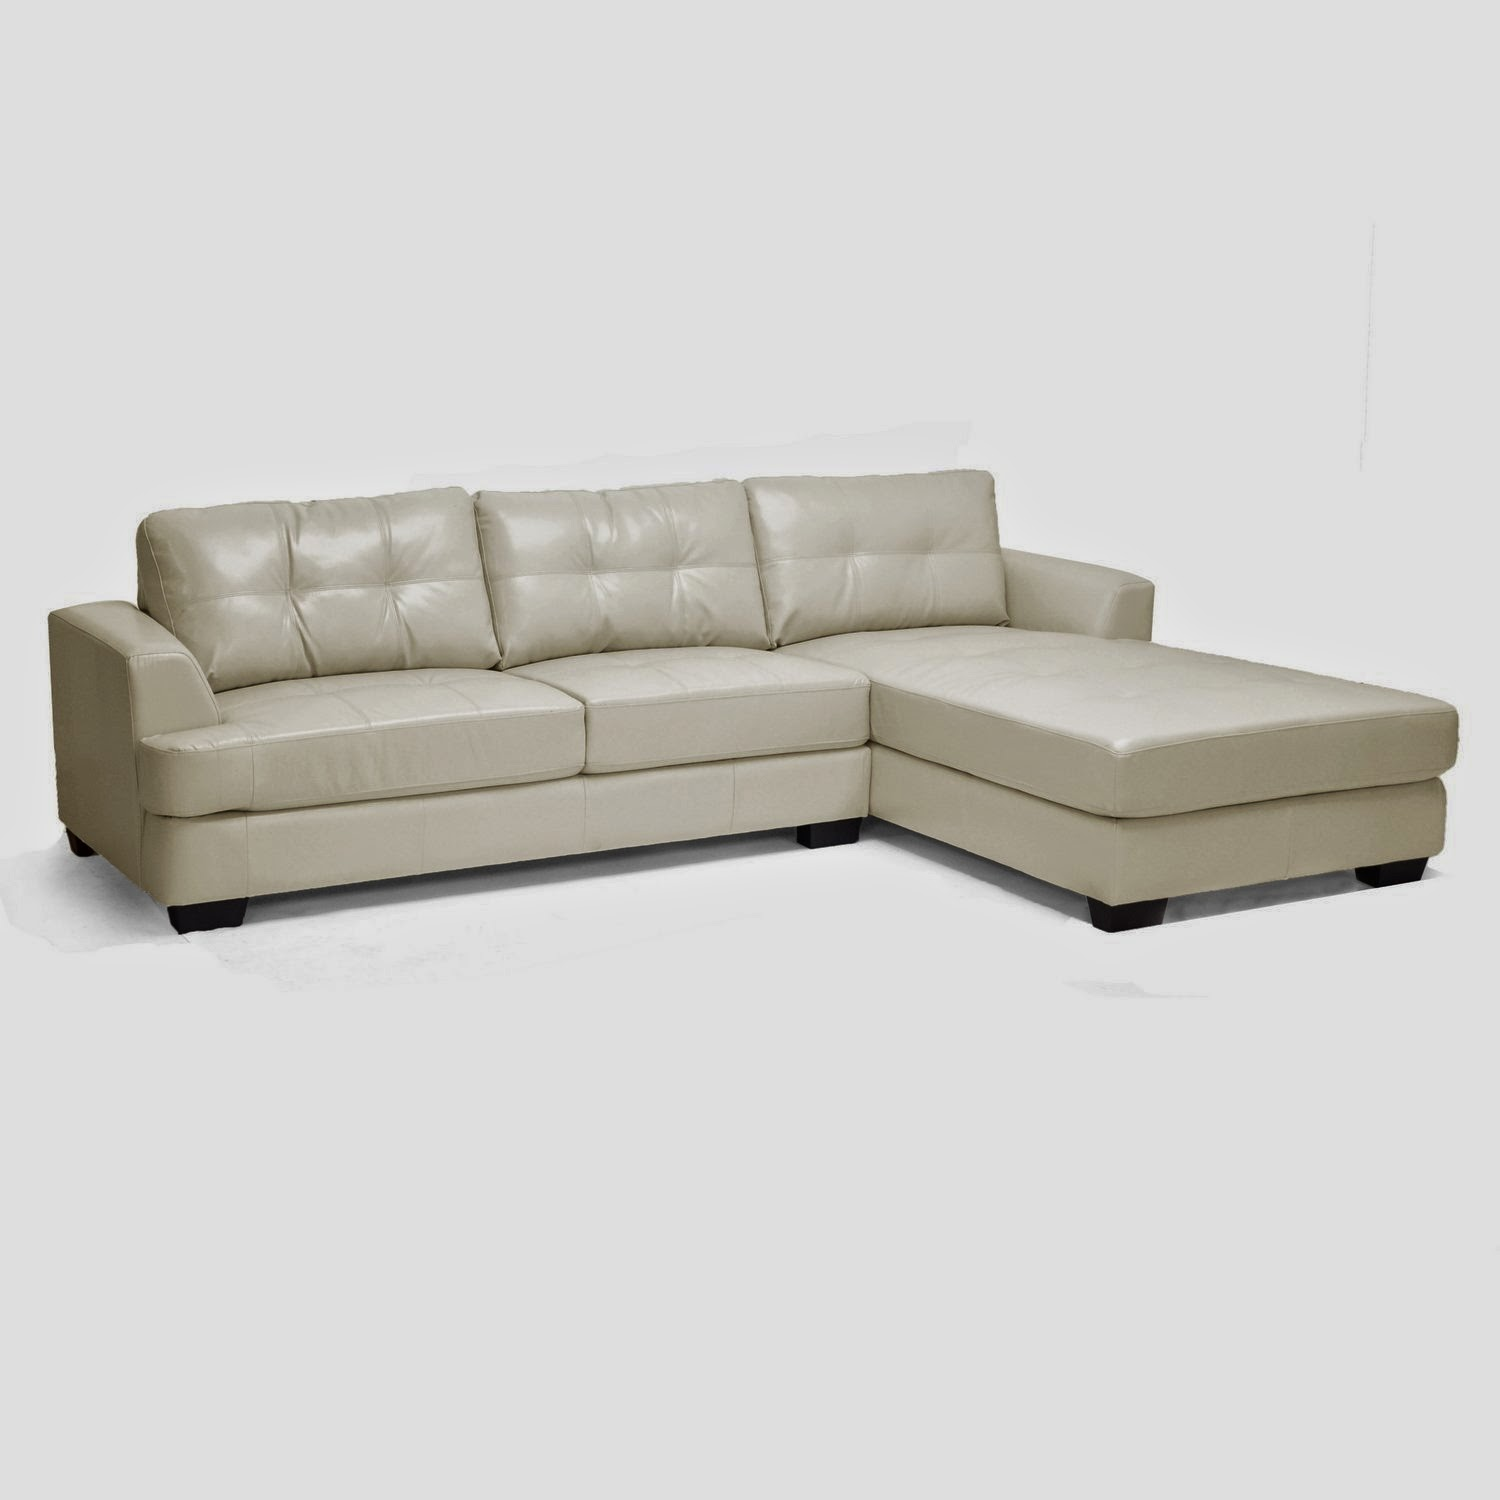 Couch with chaise leather couch with chaise lounge for Chaise lounge couch